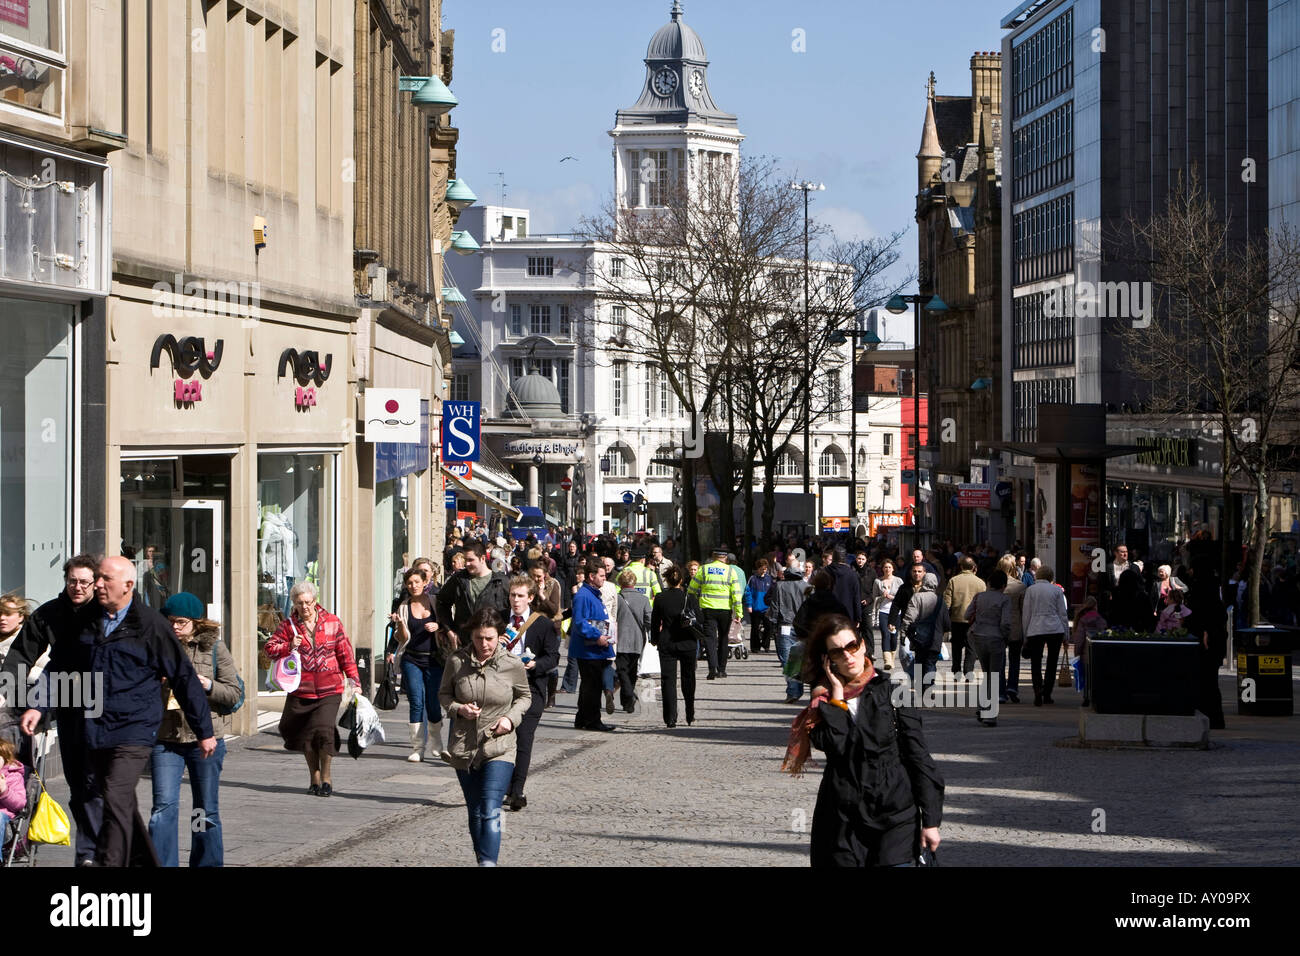 Crowds in Fargate, in Sheffield City Centre, Yorkshire, UK - Stock Image